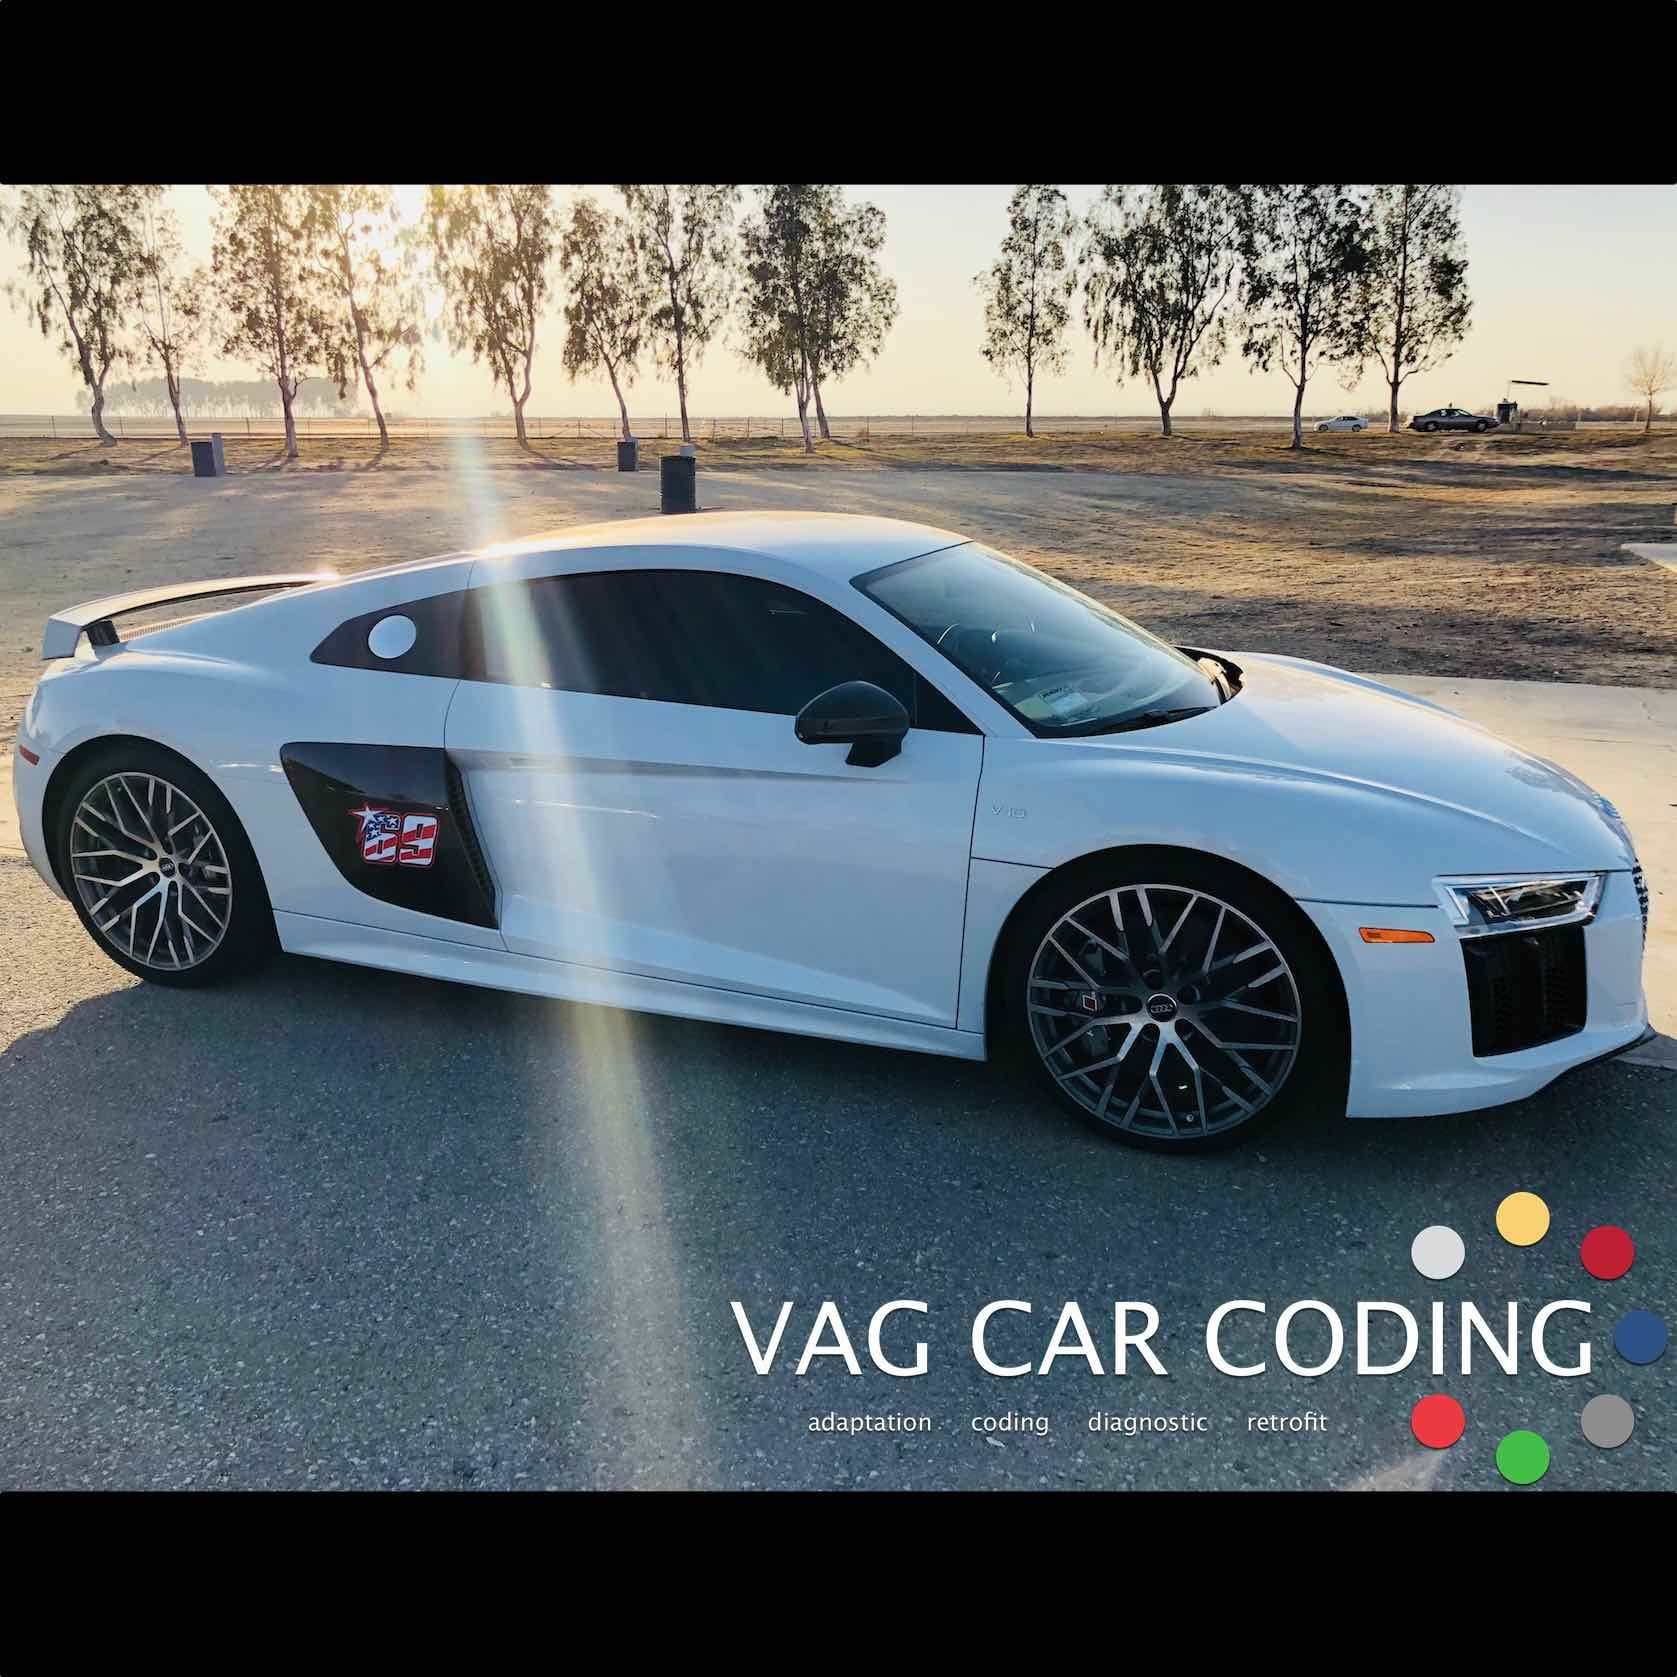 Audi of America said it was not possible - 2017 R8 V10 Plus